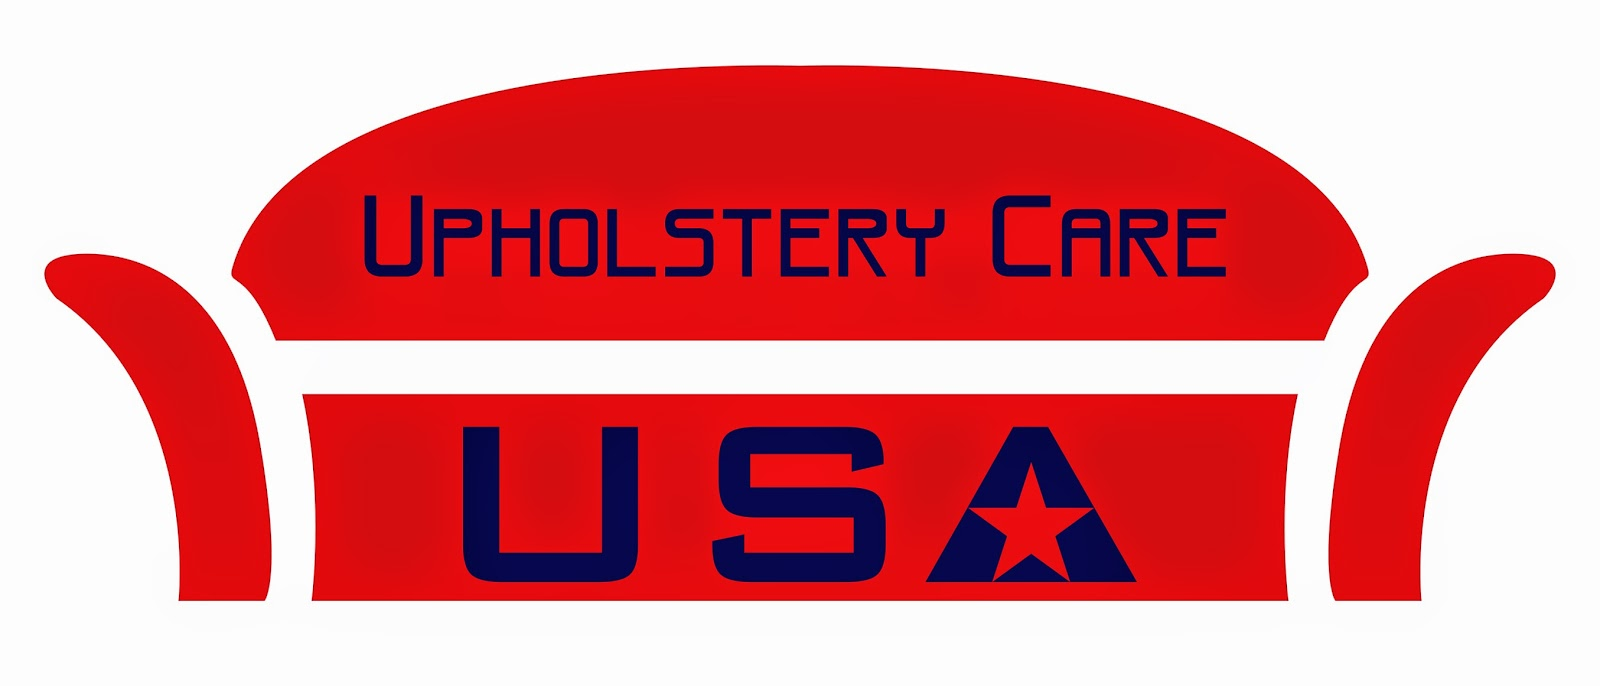 Upholstery Cleaning Franchise, Upholstery Care USA